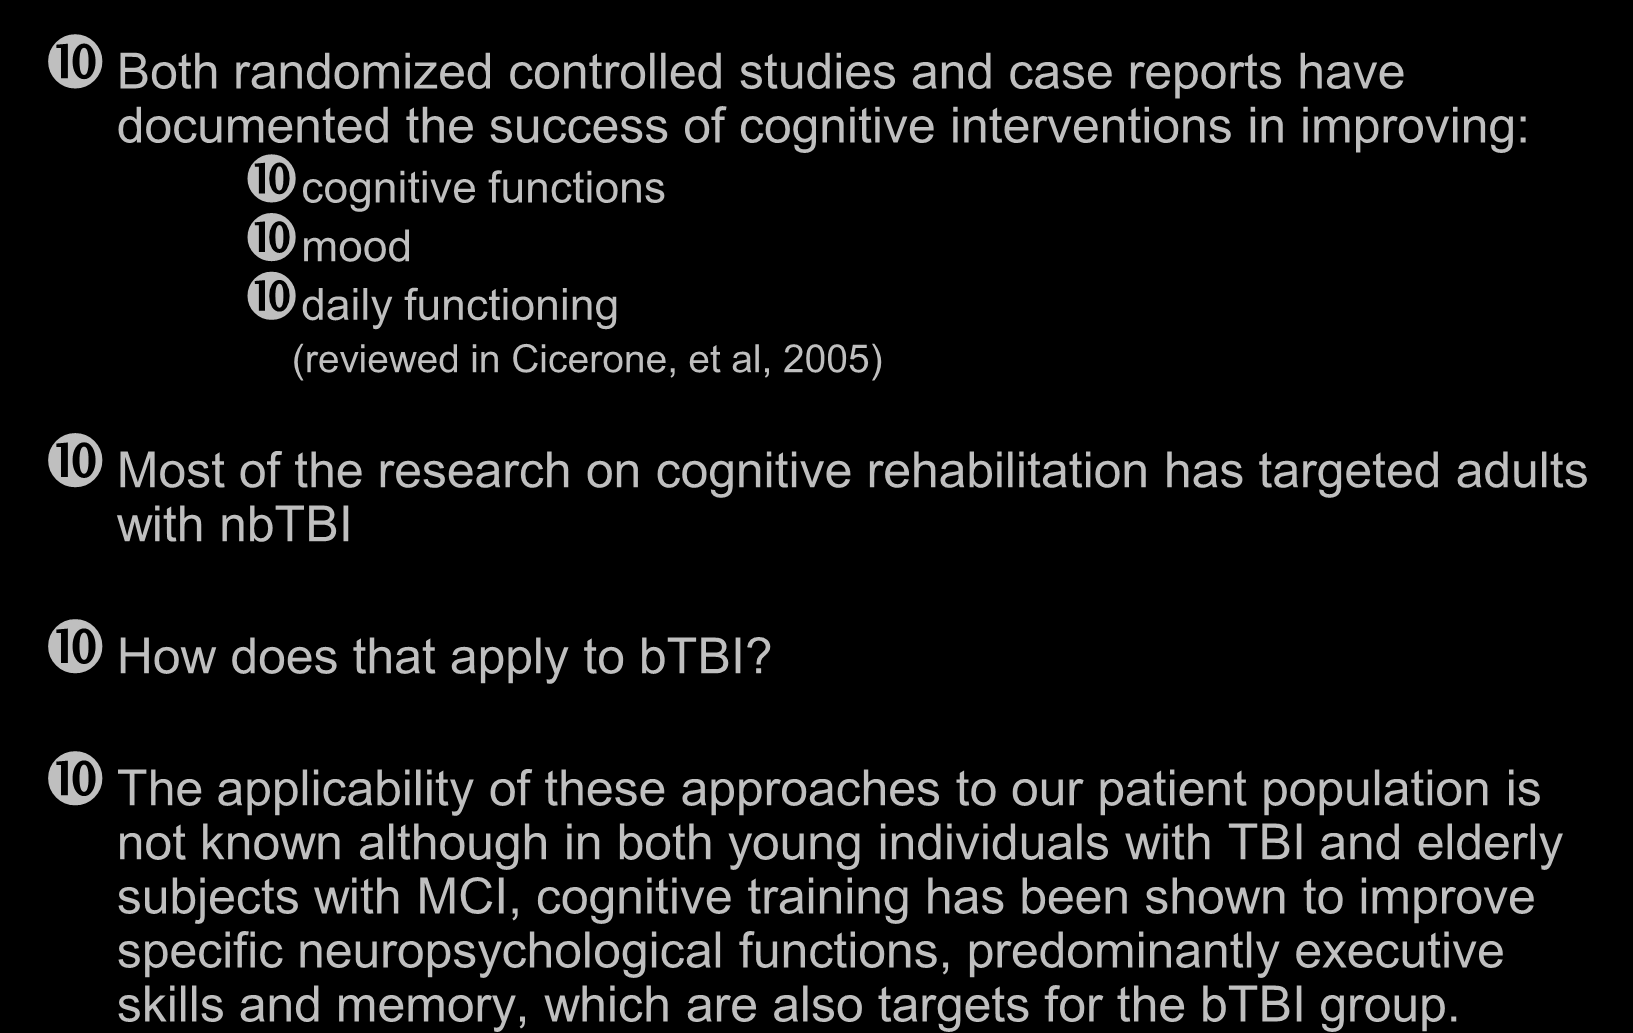 Cognitive Rehabilitation of TBI Both randomized controlled studies and case reports have documented the success of cognitive interventions in improving: cognitive functions mood daily functioning